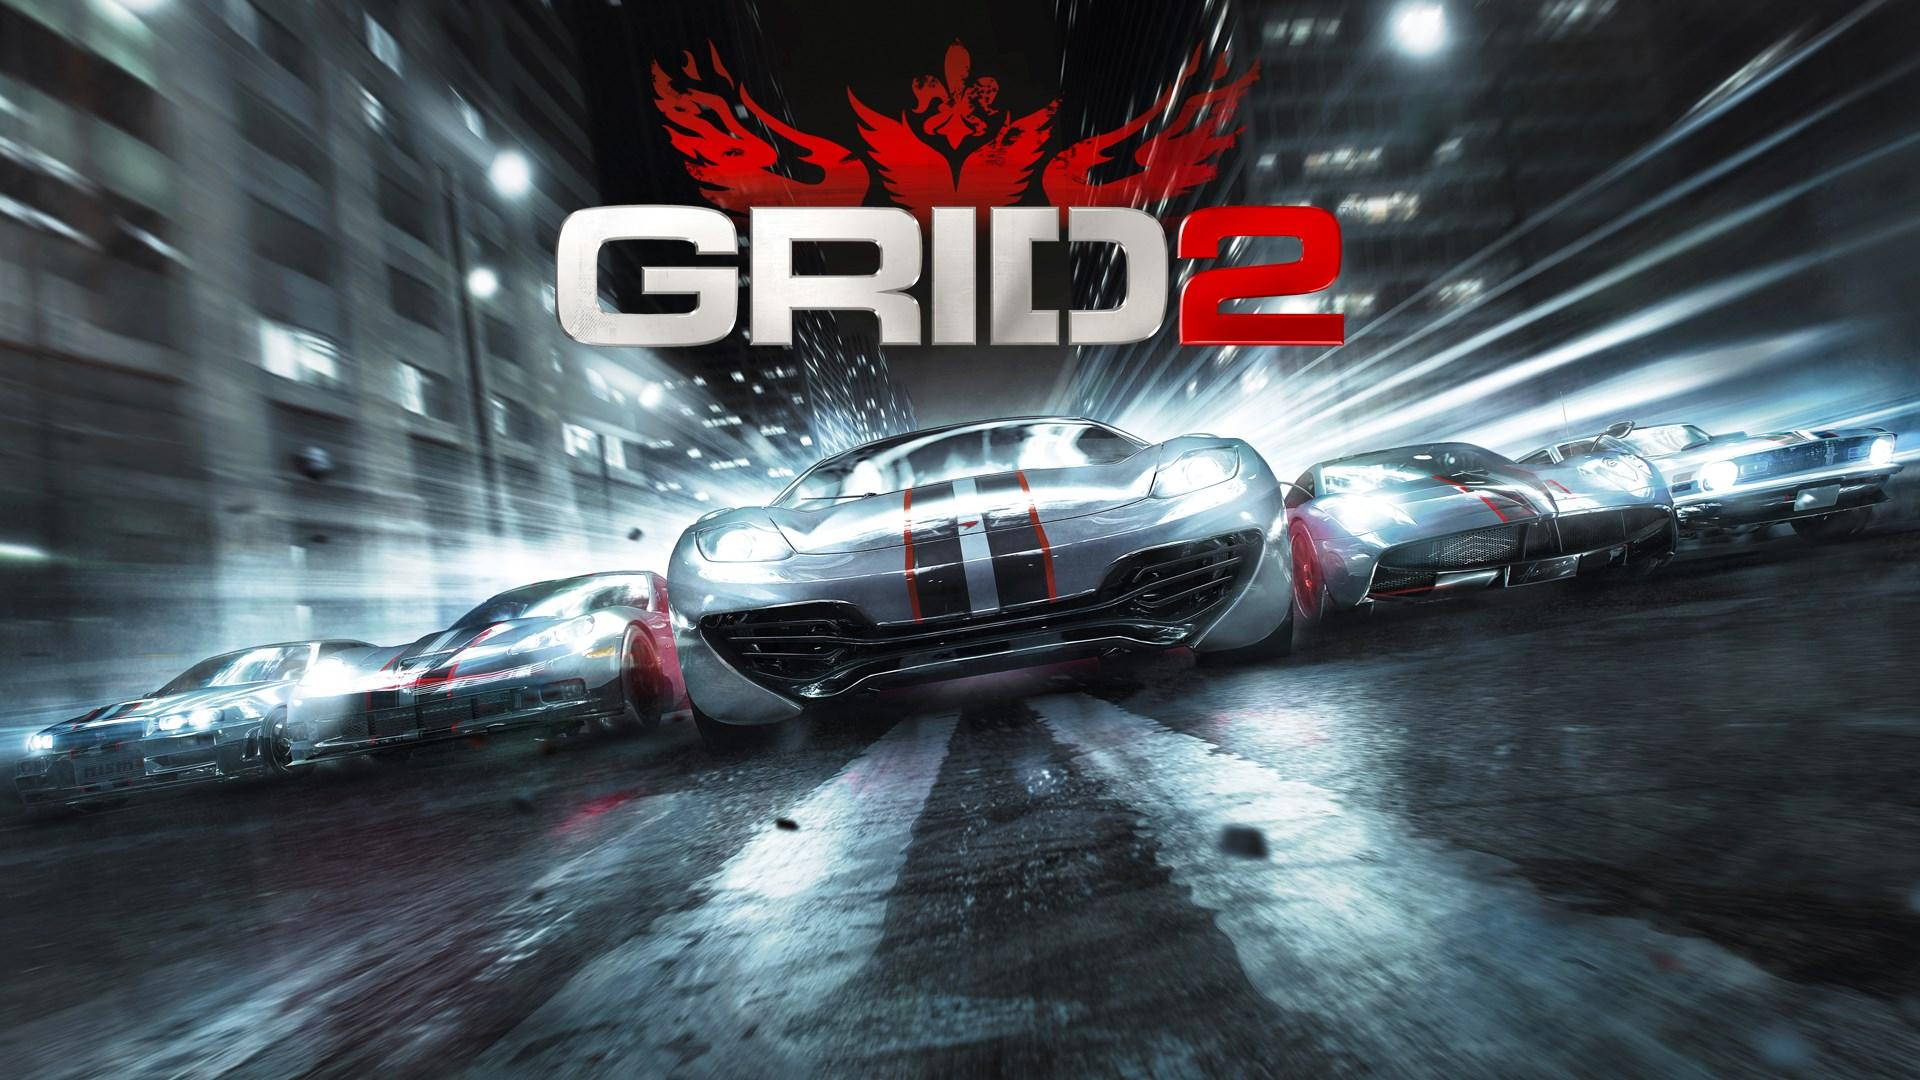 GRID 2 PC Download Game for free